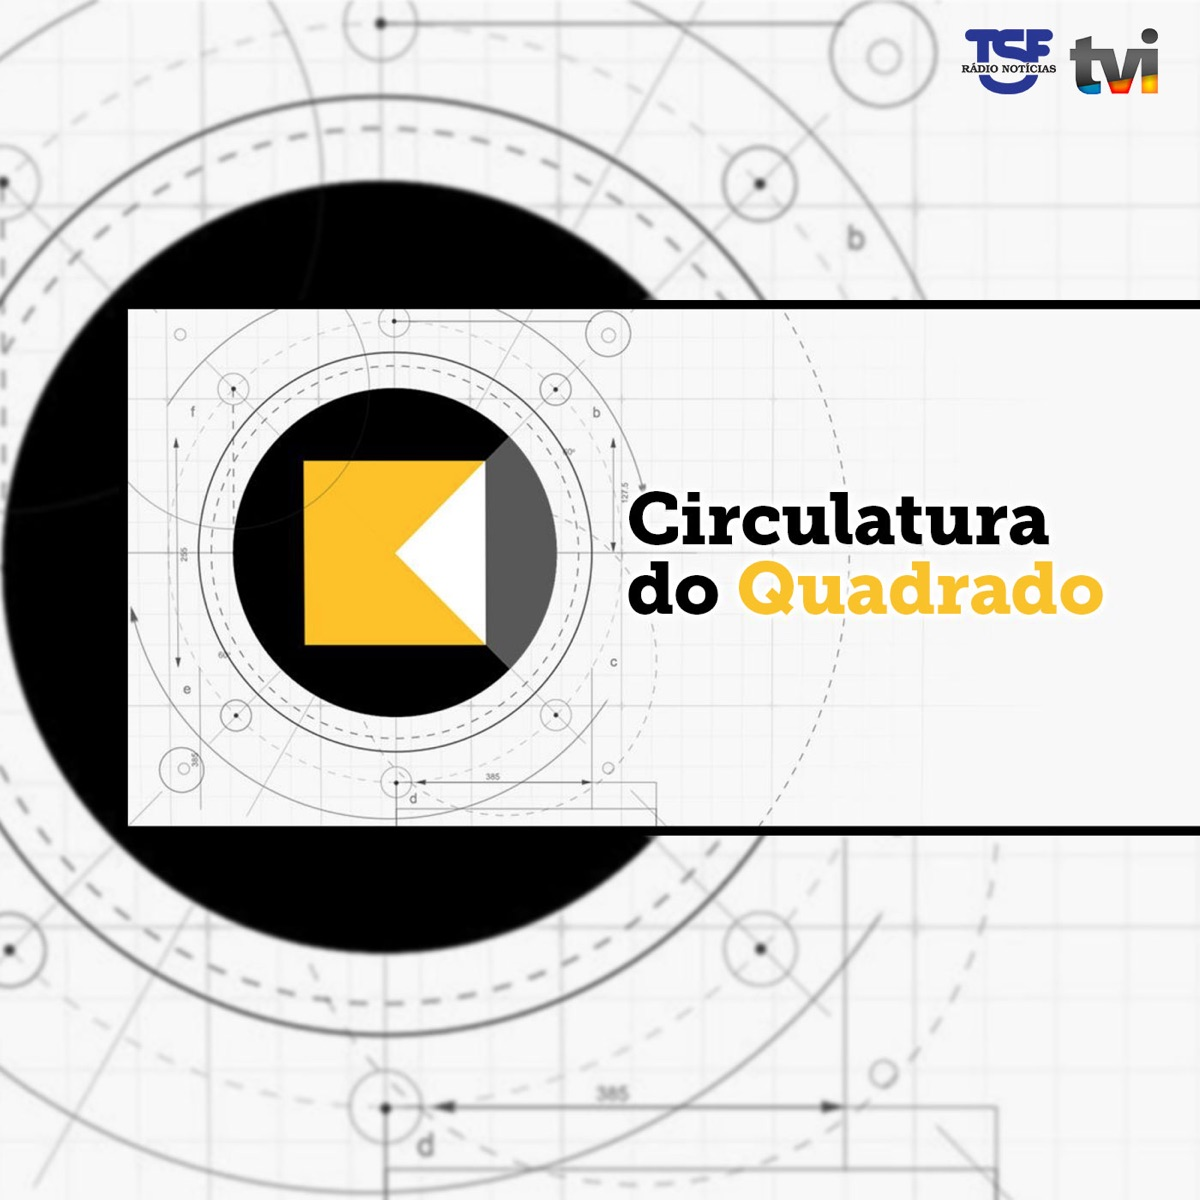 Circulatura do Quadrado - 06 de Maio 2020